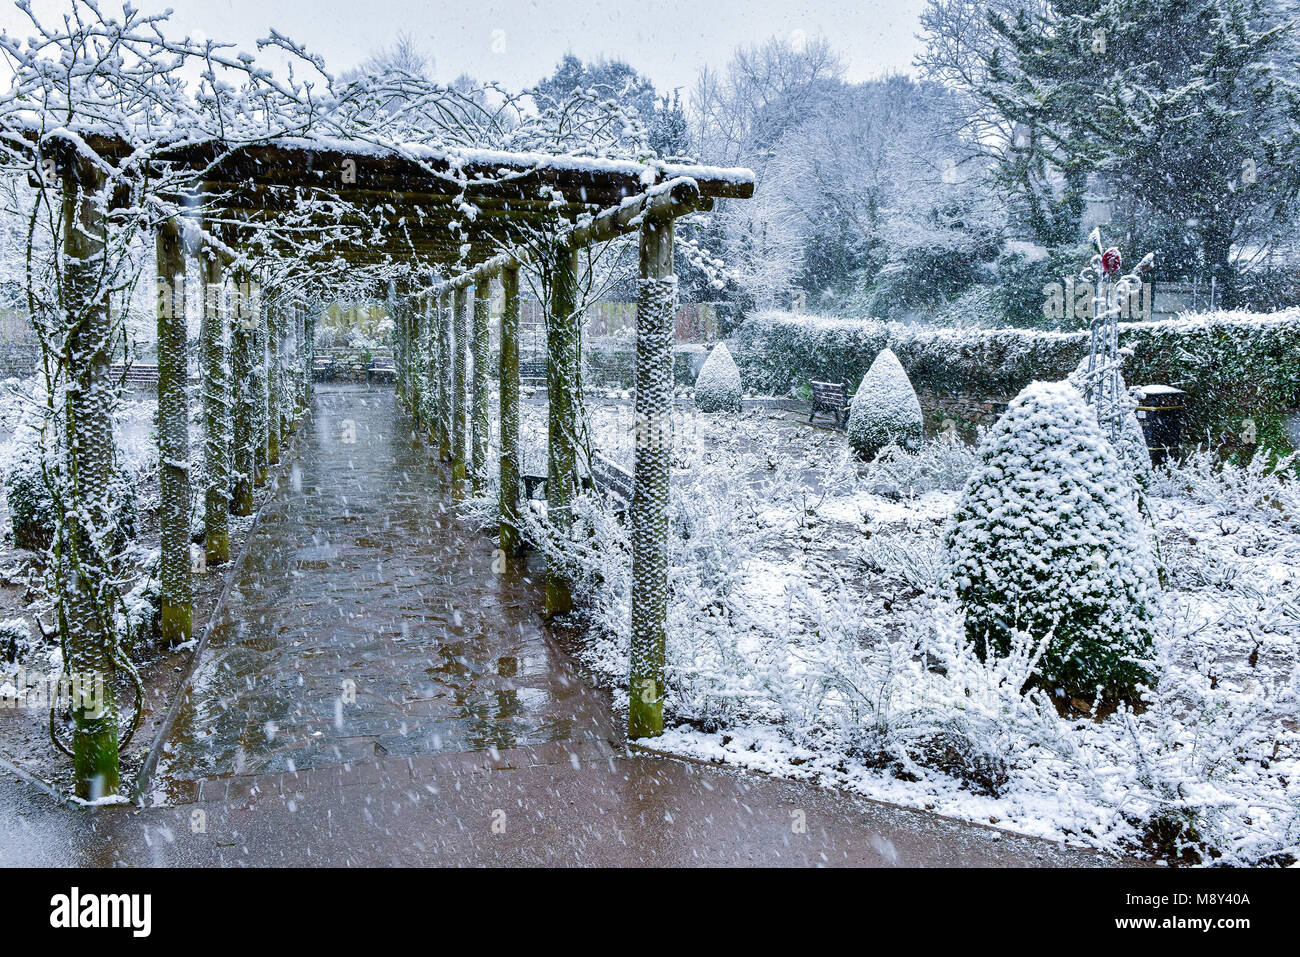 Heavy snowfall in Trenance Park in Newquay Cornwall. - Stock Image